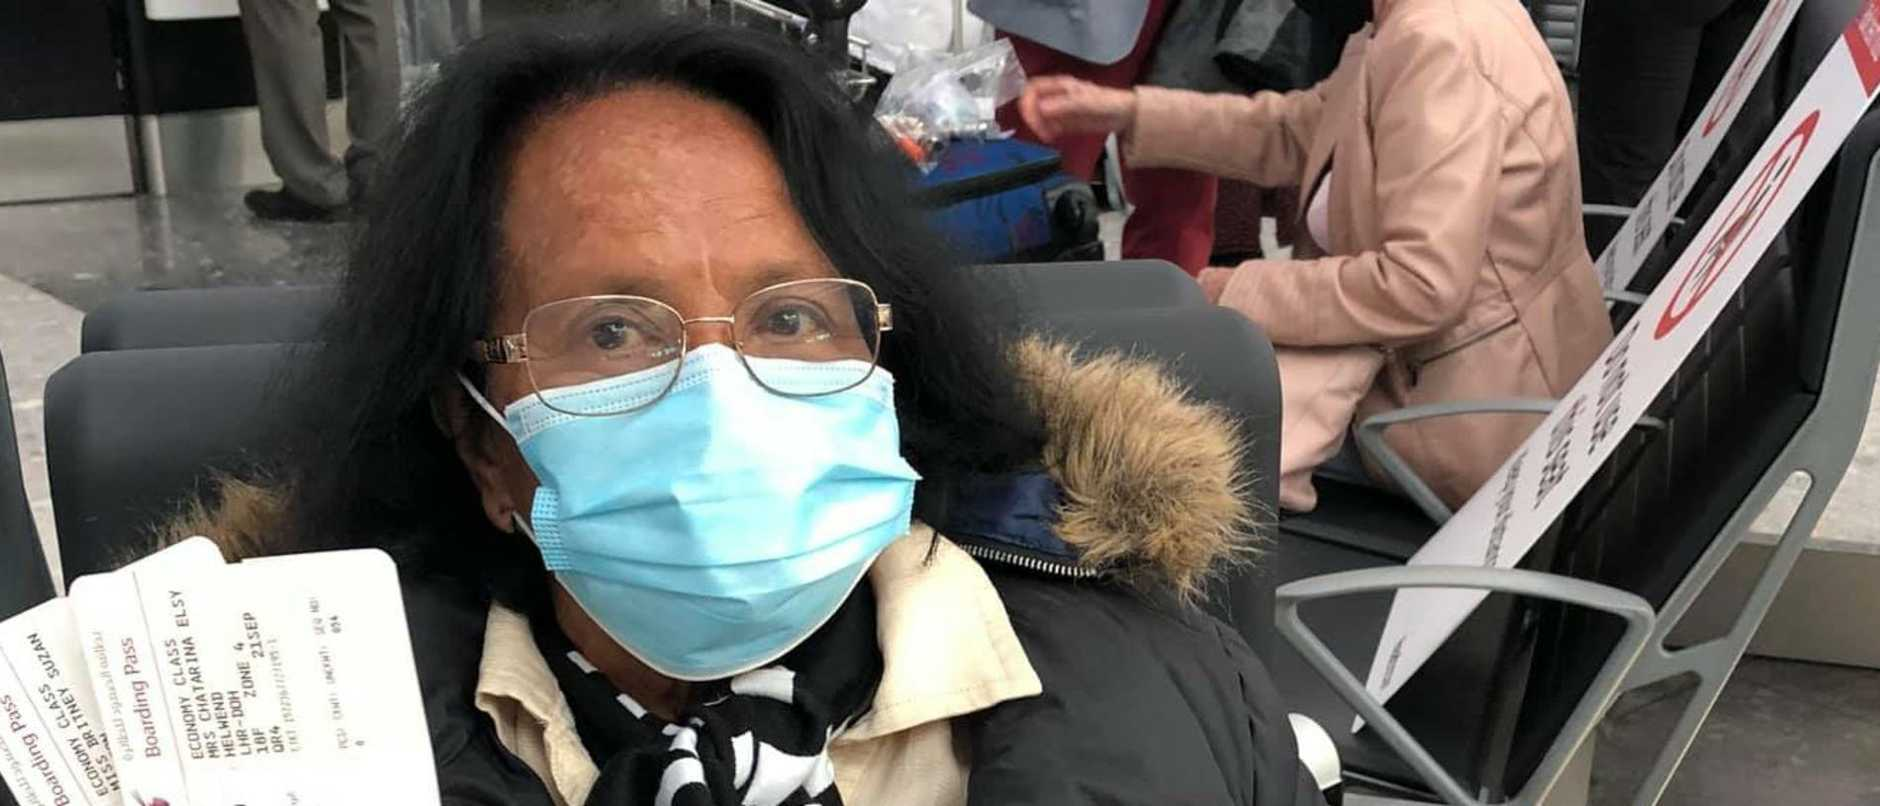 A grandmother has finally made it back to Australia after being stranded in Spain for six months during the coronavirus pandemic.